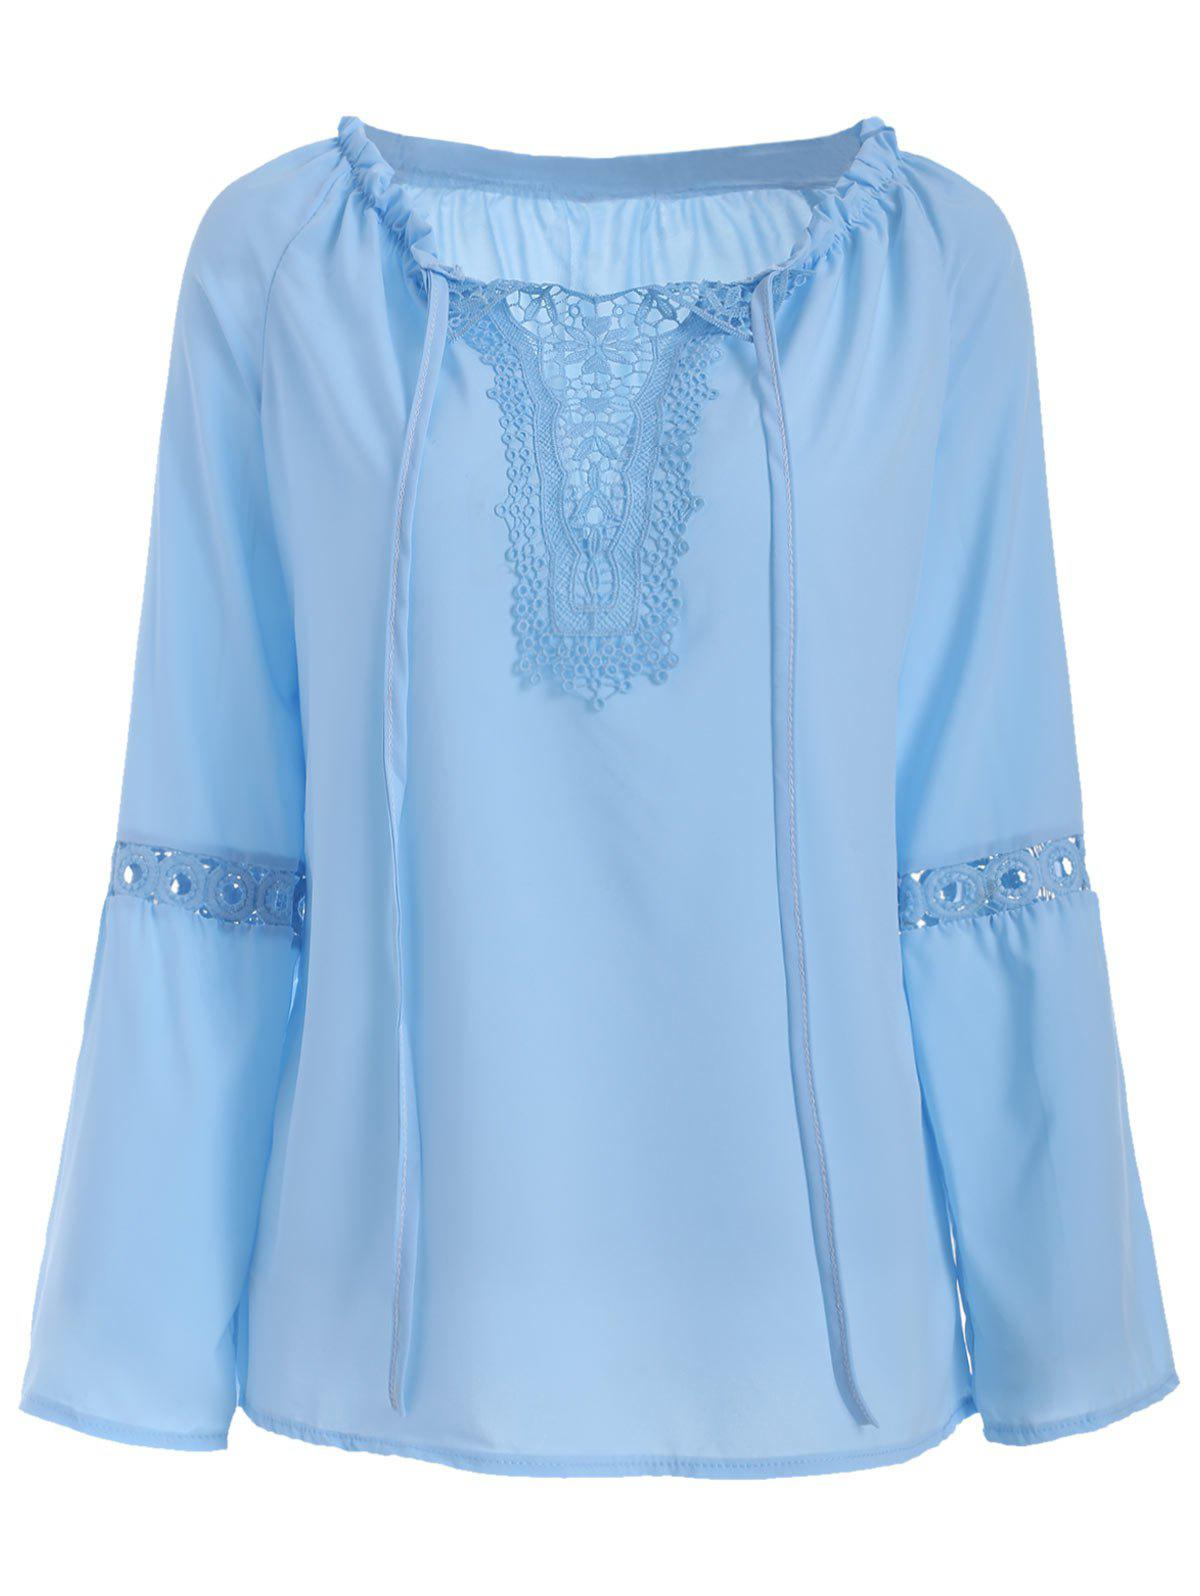 Hot Panel Hollow Out Flare Sleeve Blouse